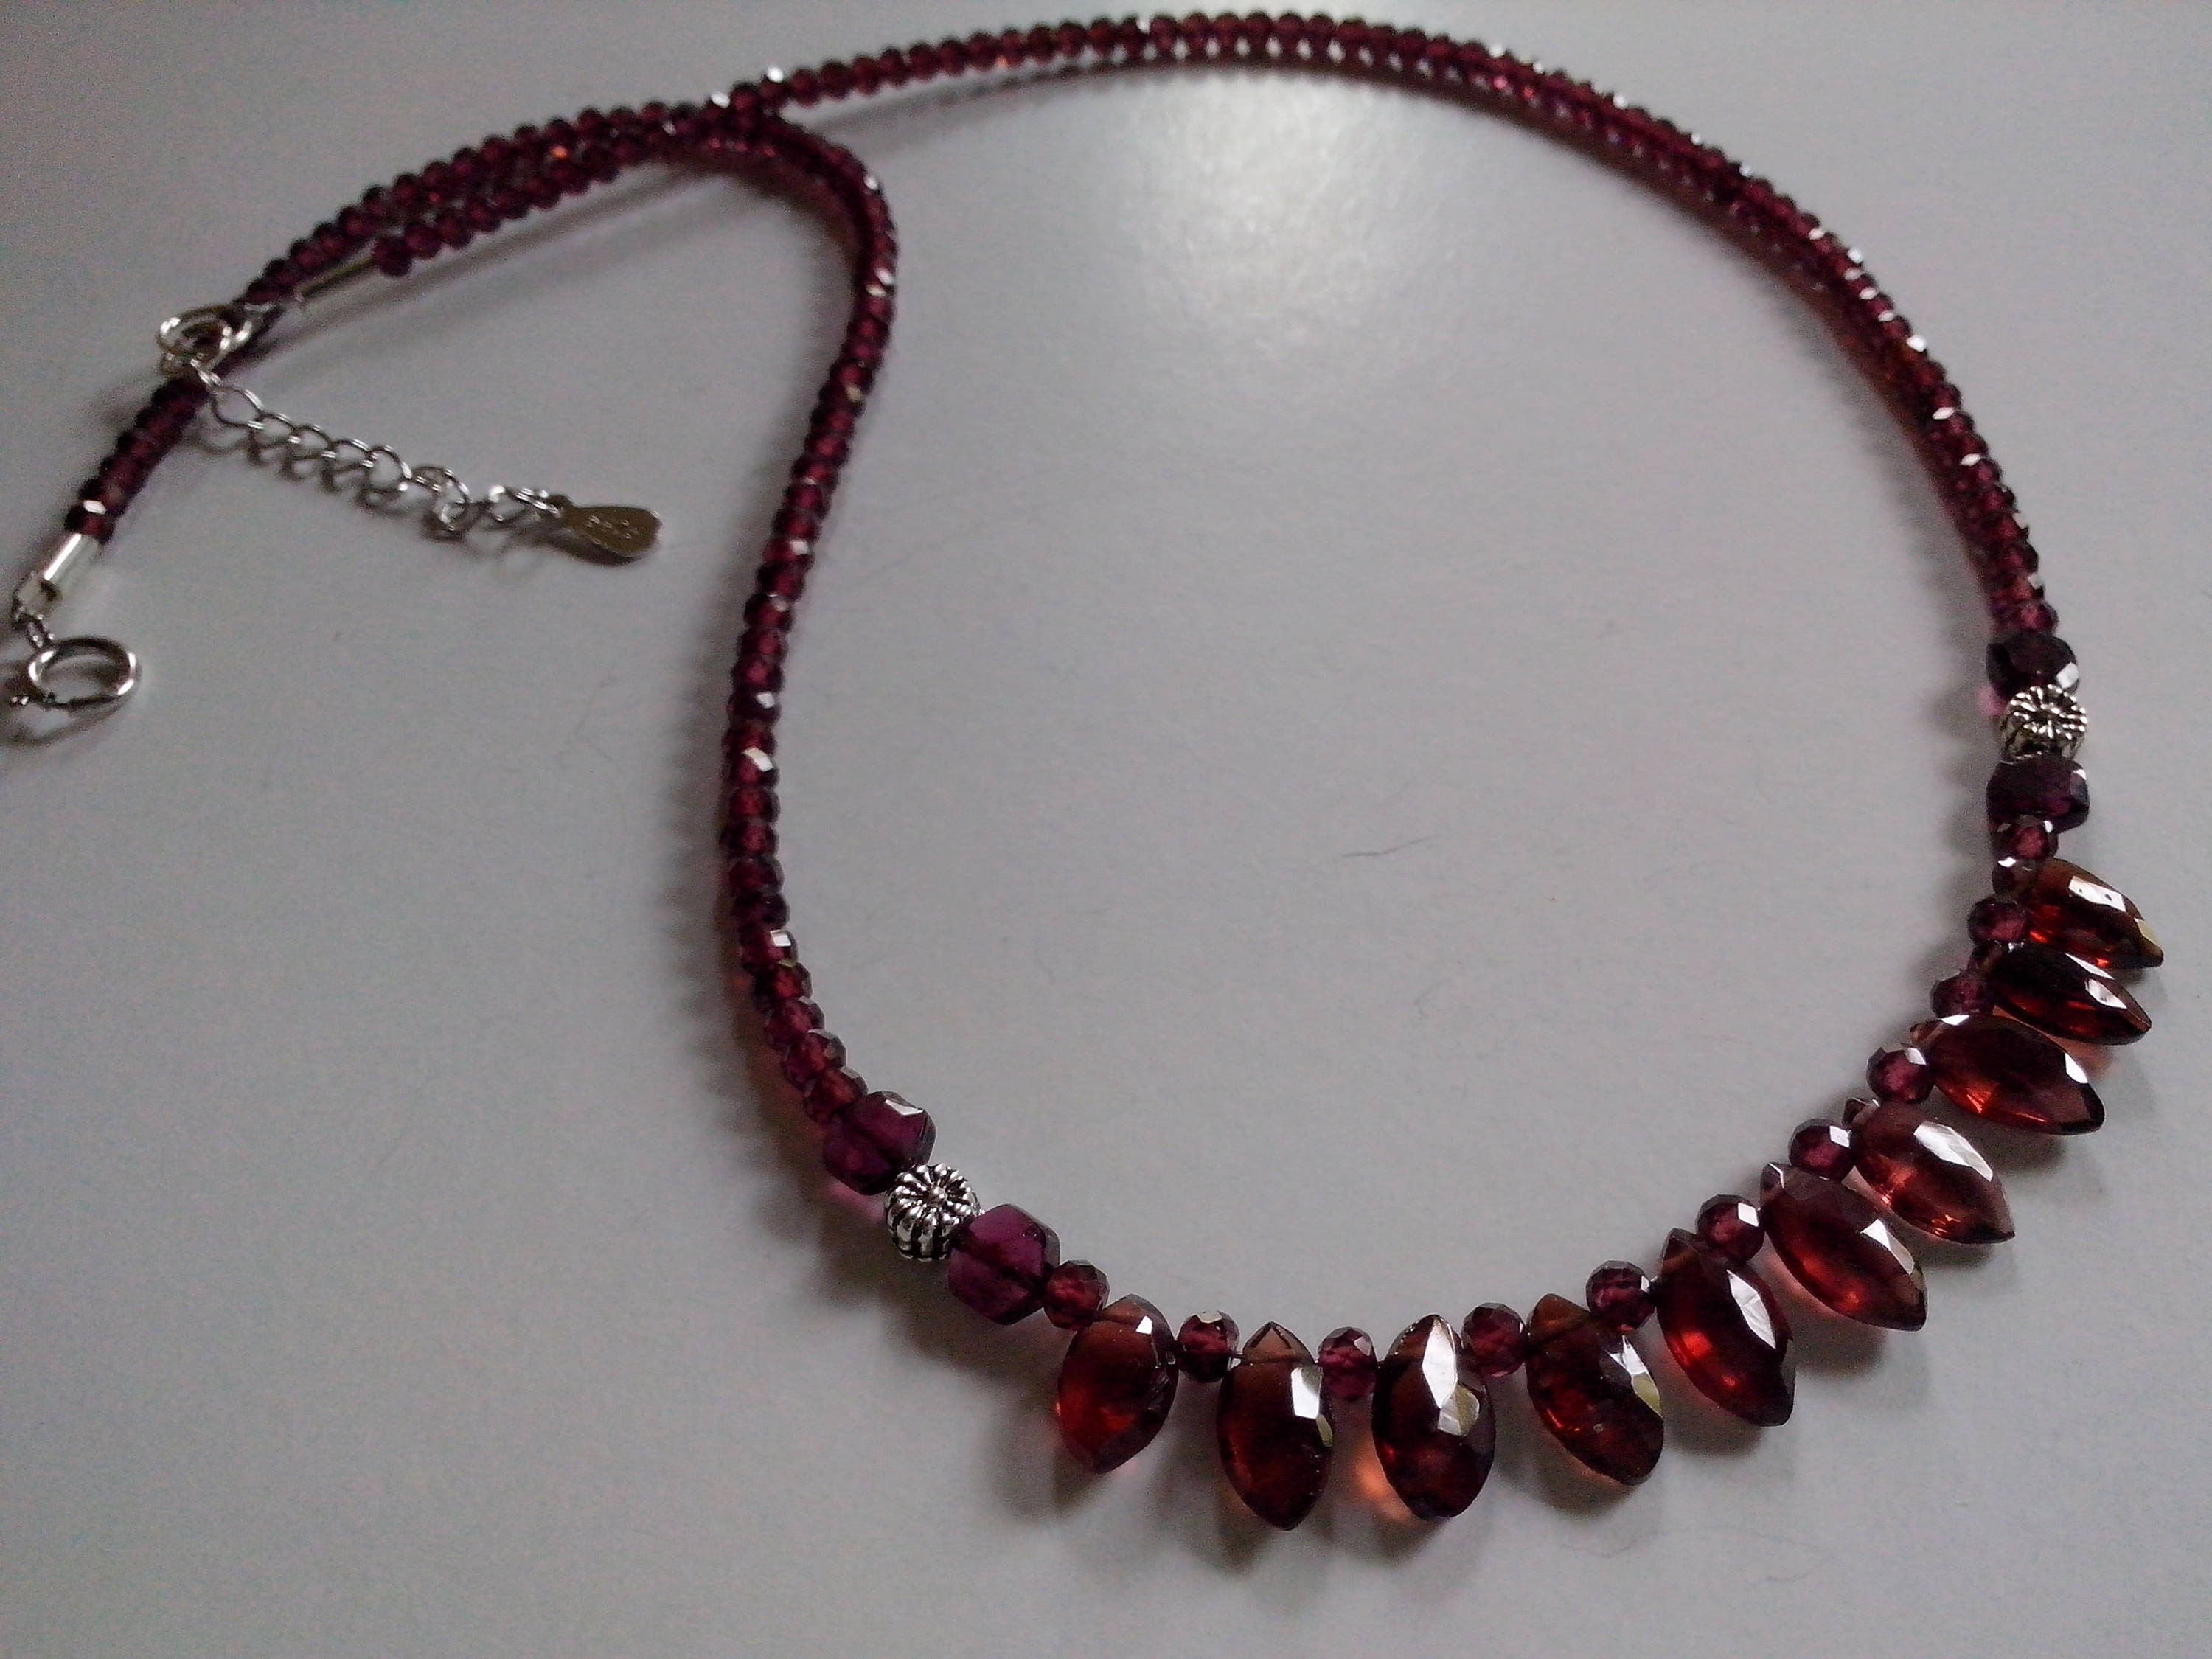 rose necklace designs with garnet pendant vermeil vasant quartz silver sterling gold products and red